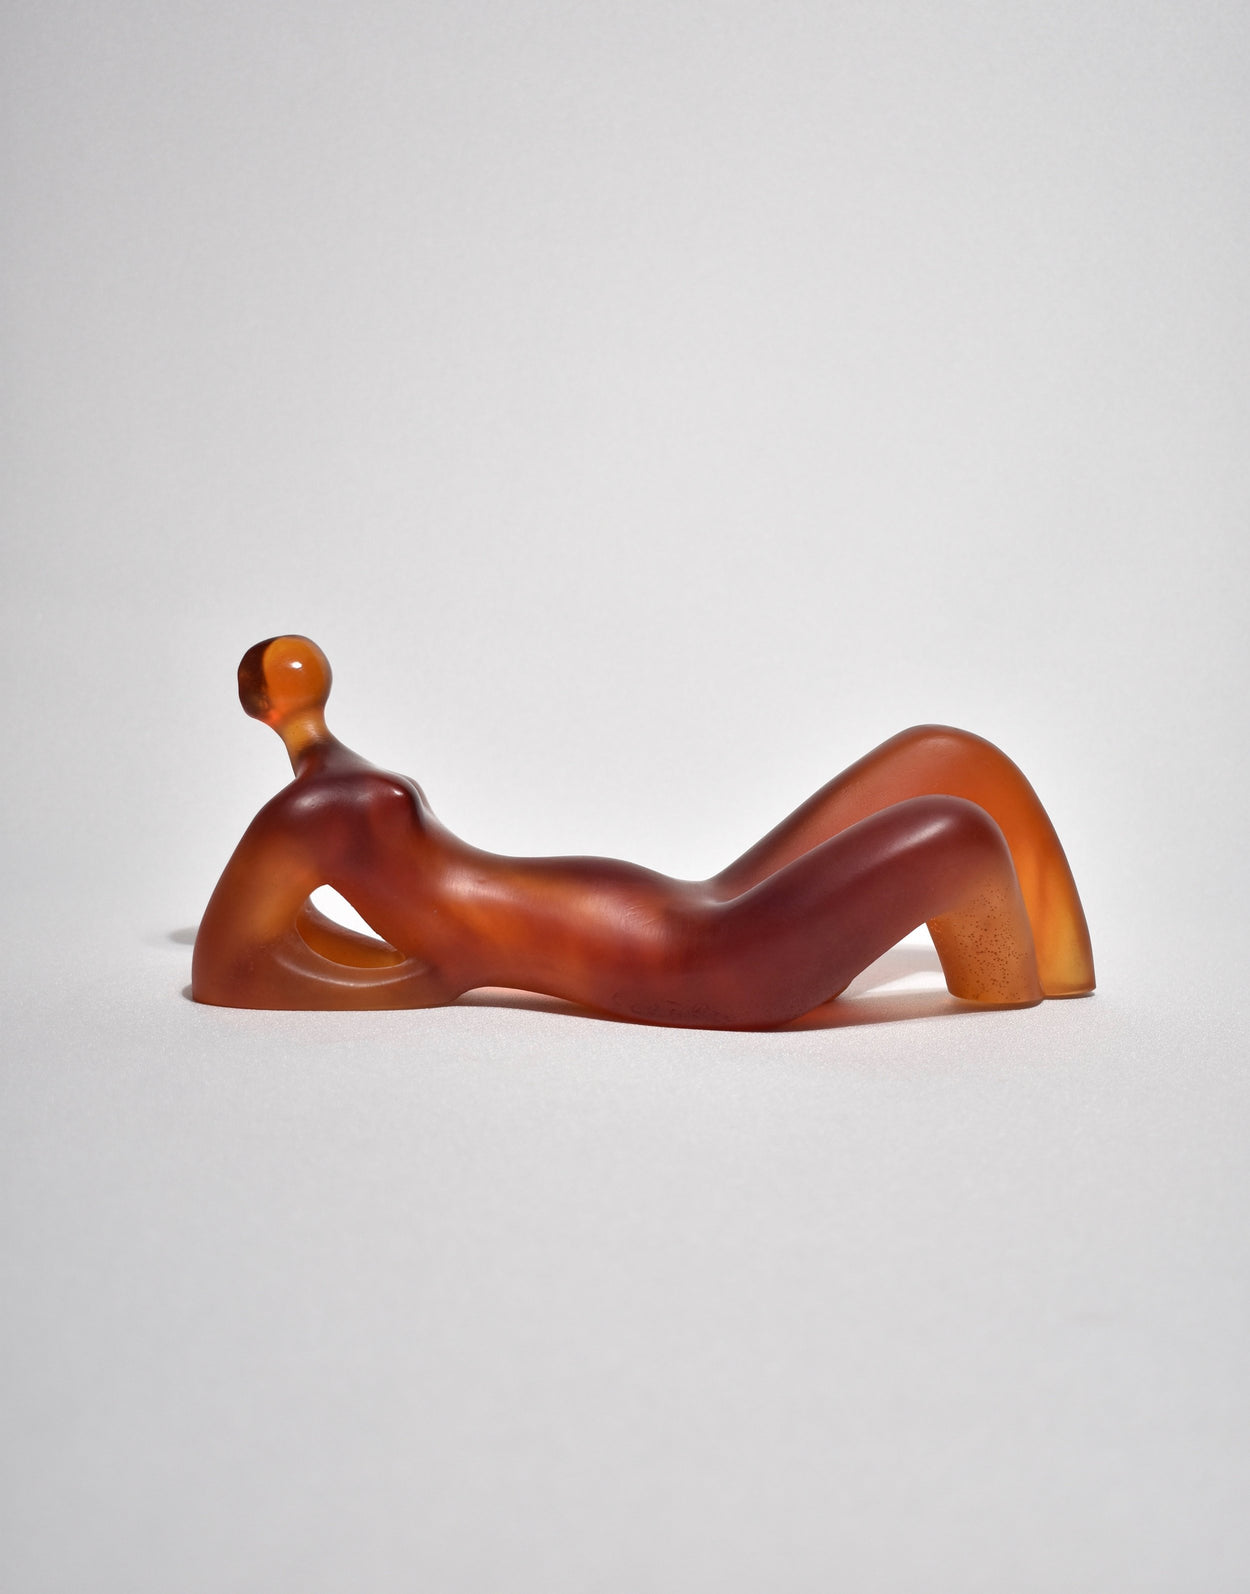 Elongated Woman' Glass Sculpture in Amber